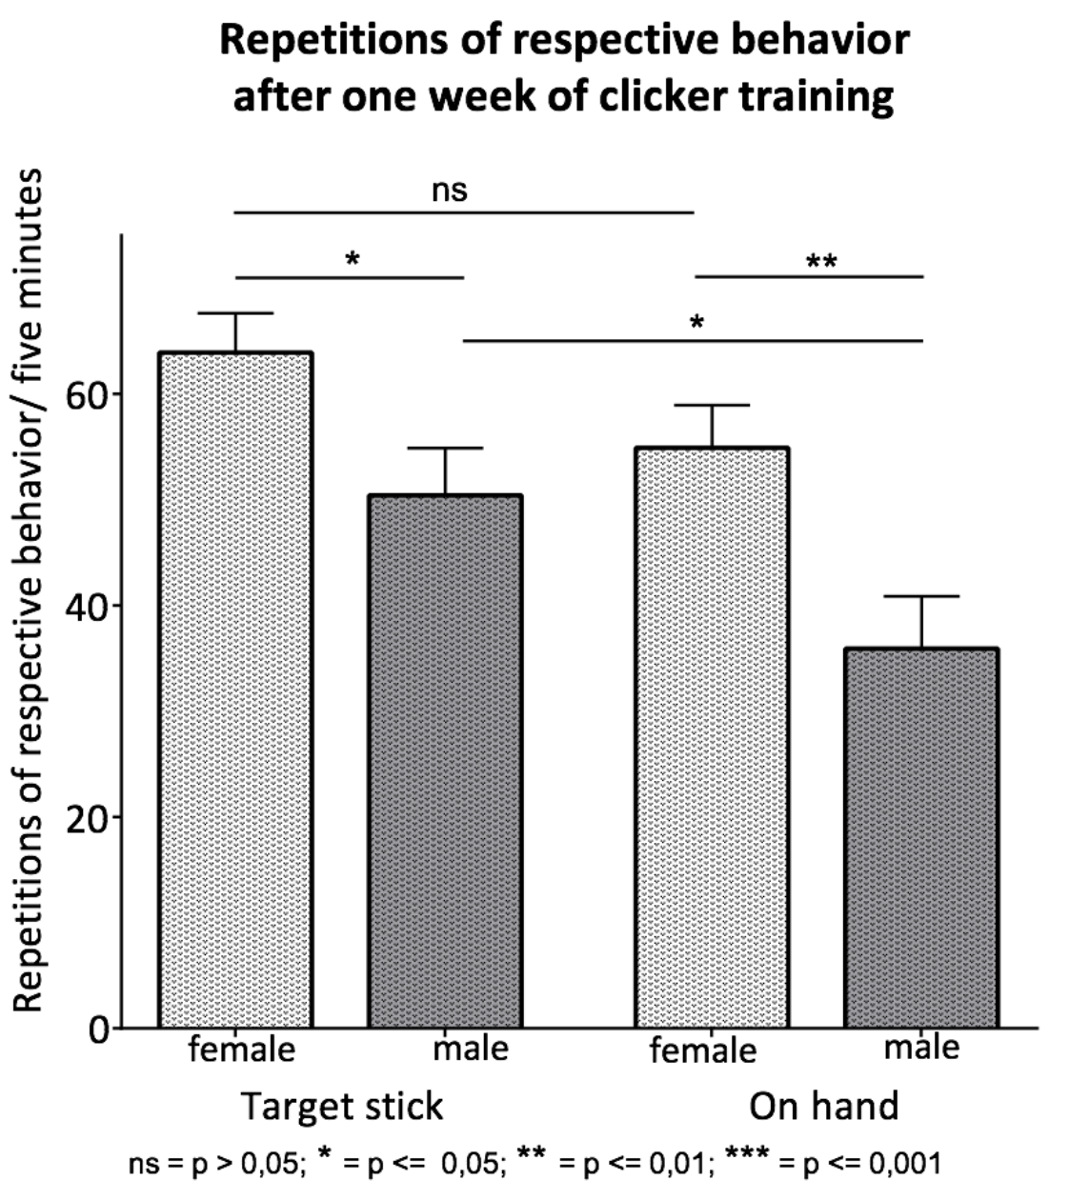 Introducing Clicker Training as a Cognitive Enrichment for